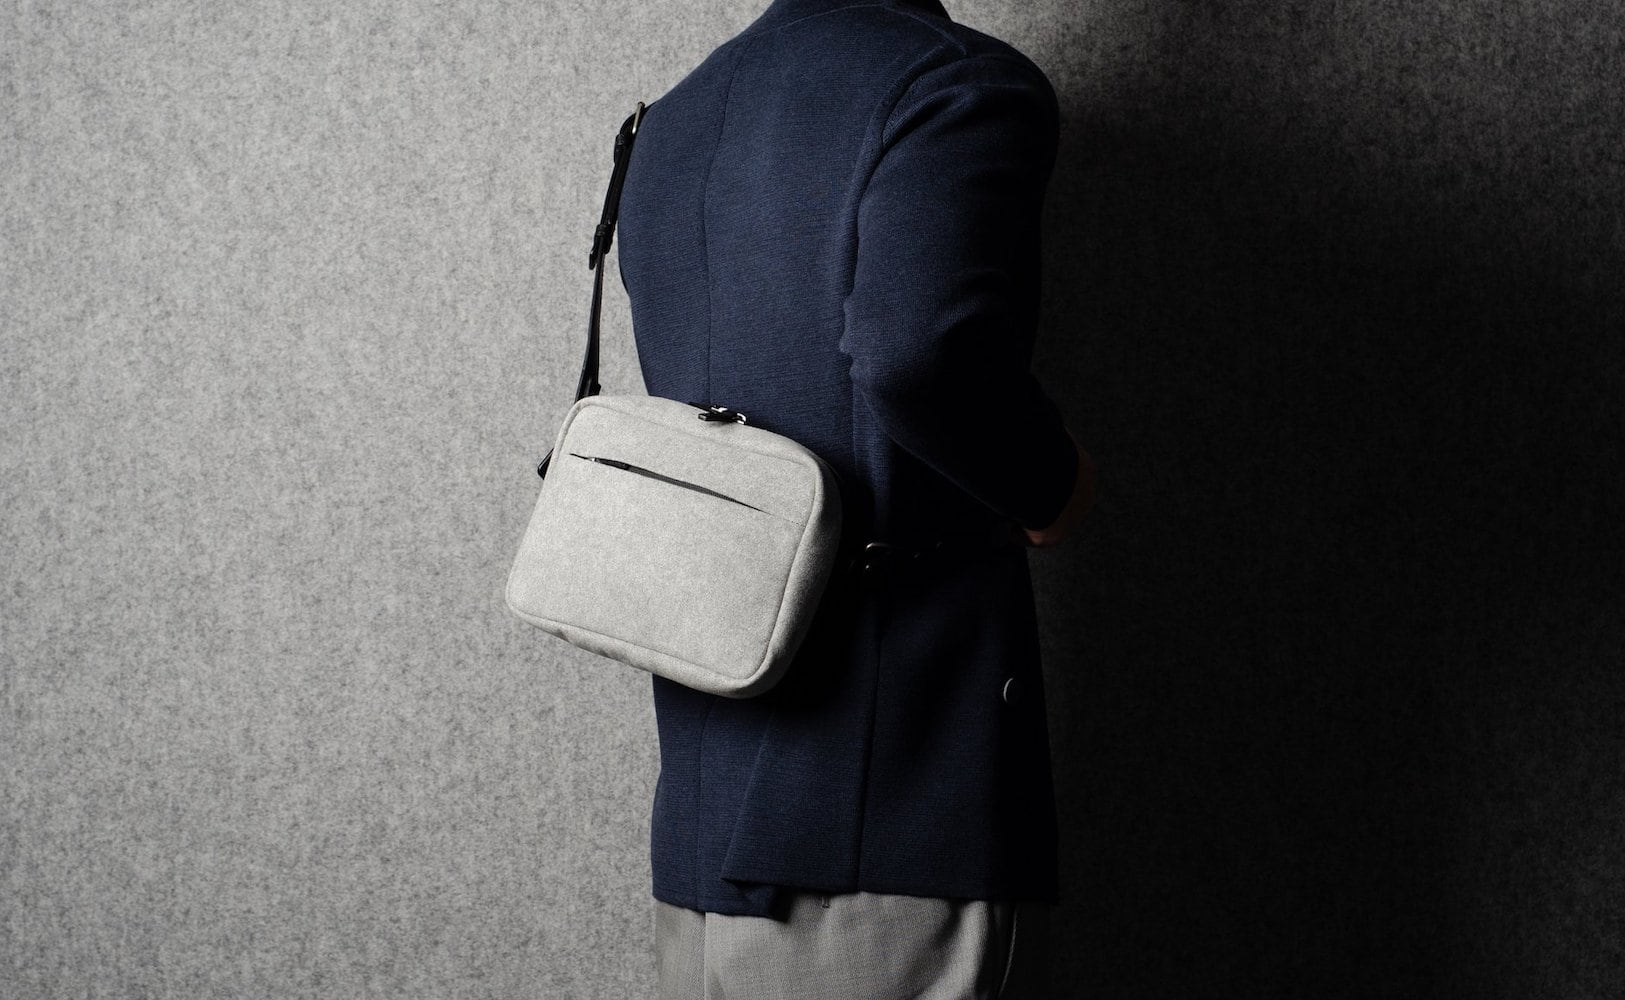 hardgraft All-Rounder Practical Leather Pack helps you tote all your daily essentials